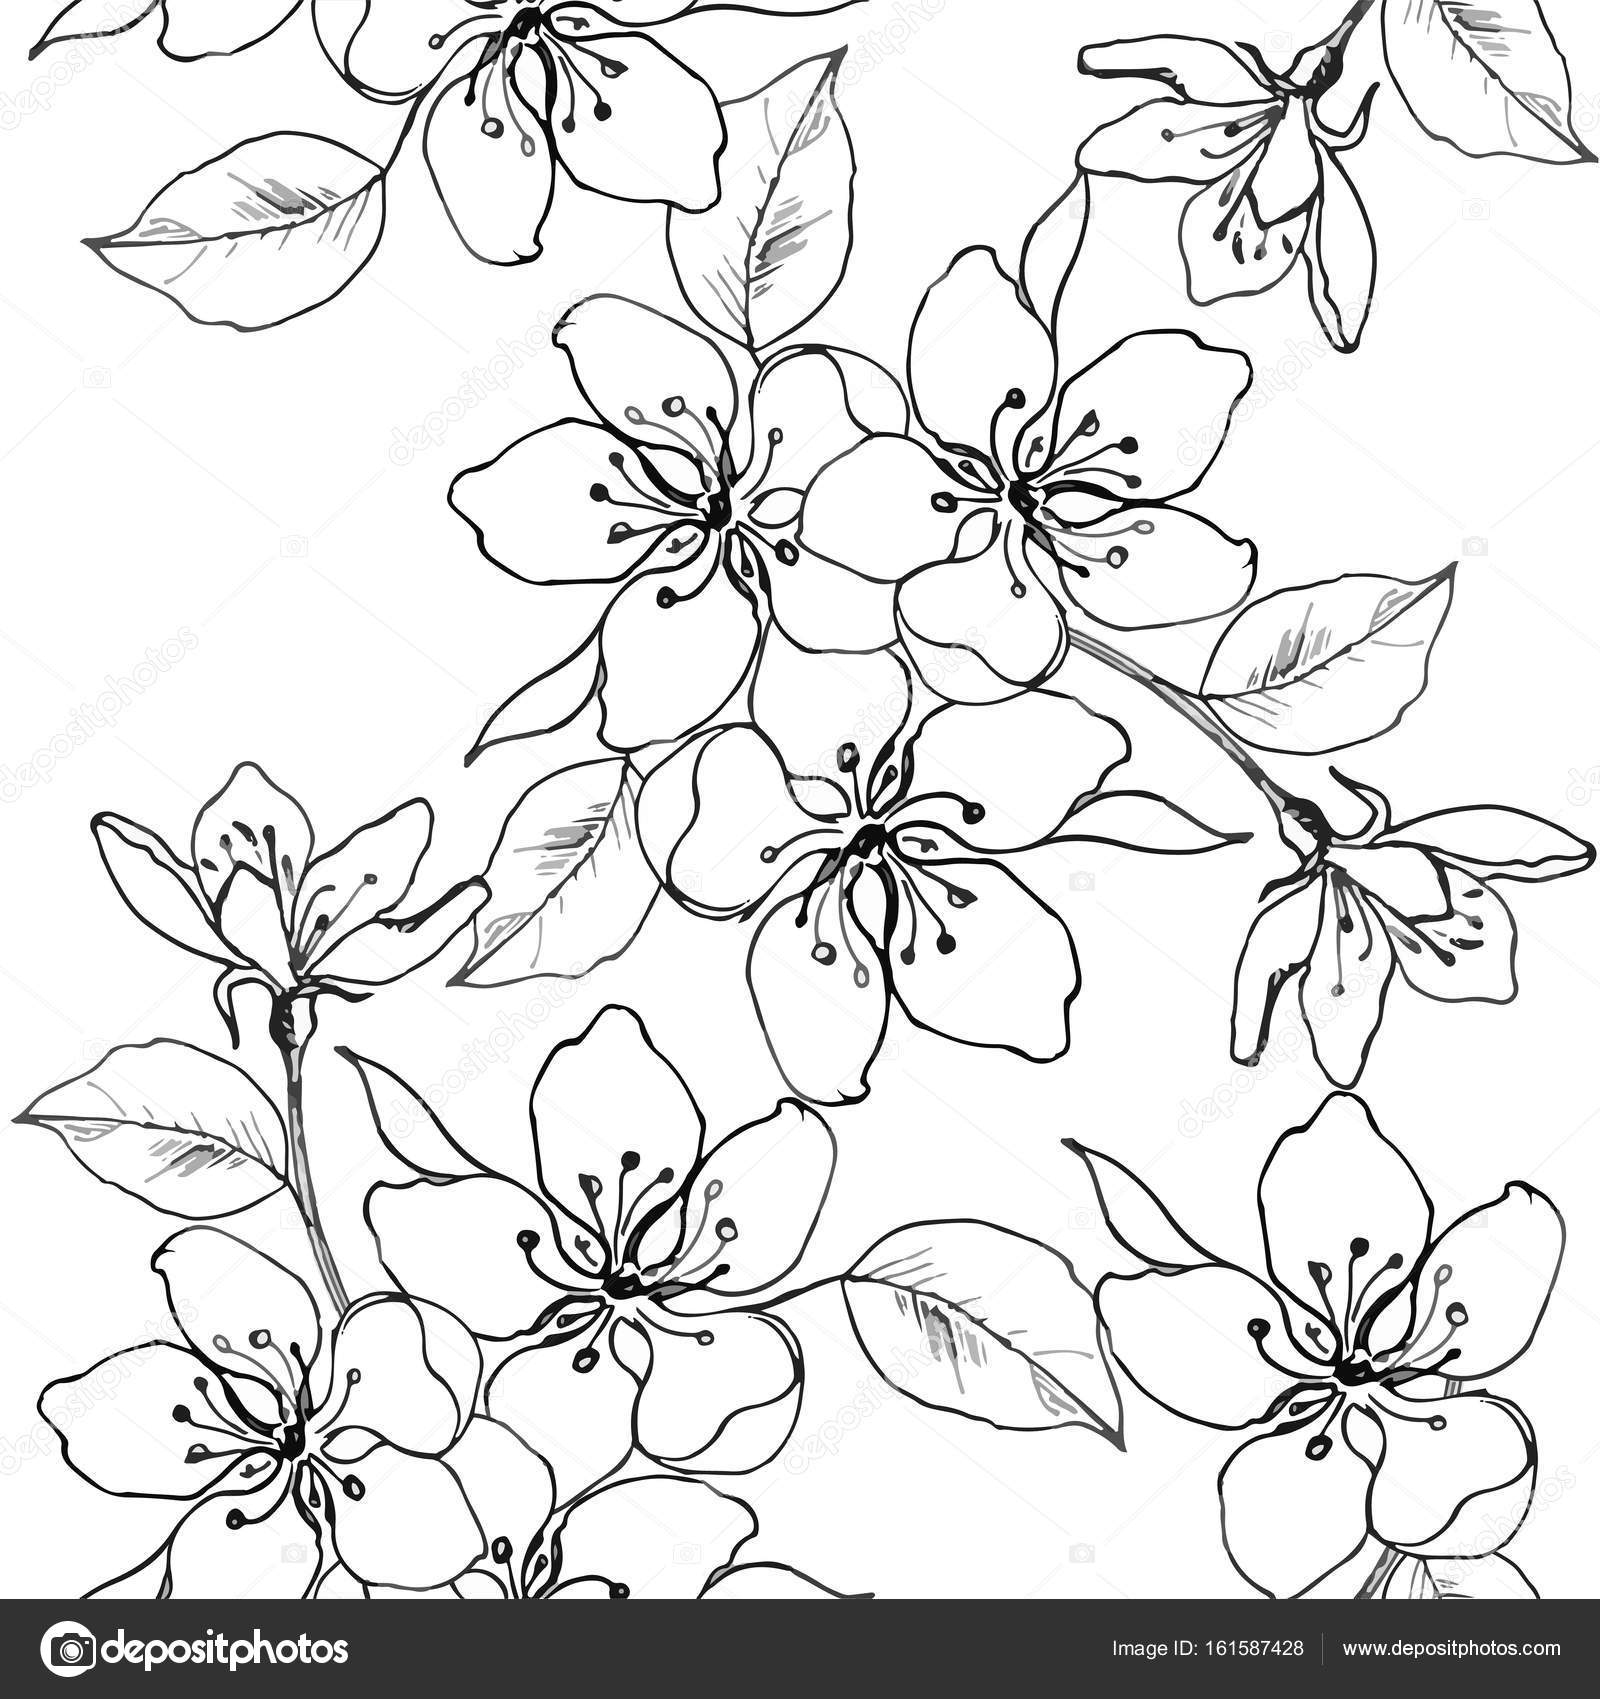 Drawing hands a branch of cherry blossom pear apple vector drawing hands a branch of cherry blossom pear apple vector seamless pattern of spring flowers decorative ornament backdrop for fabric textile mightylinksfo